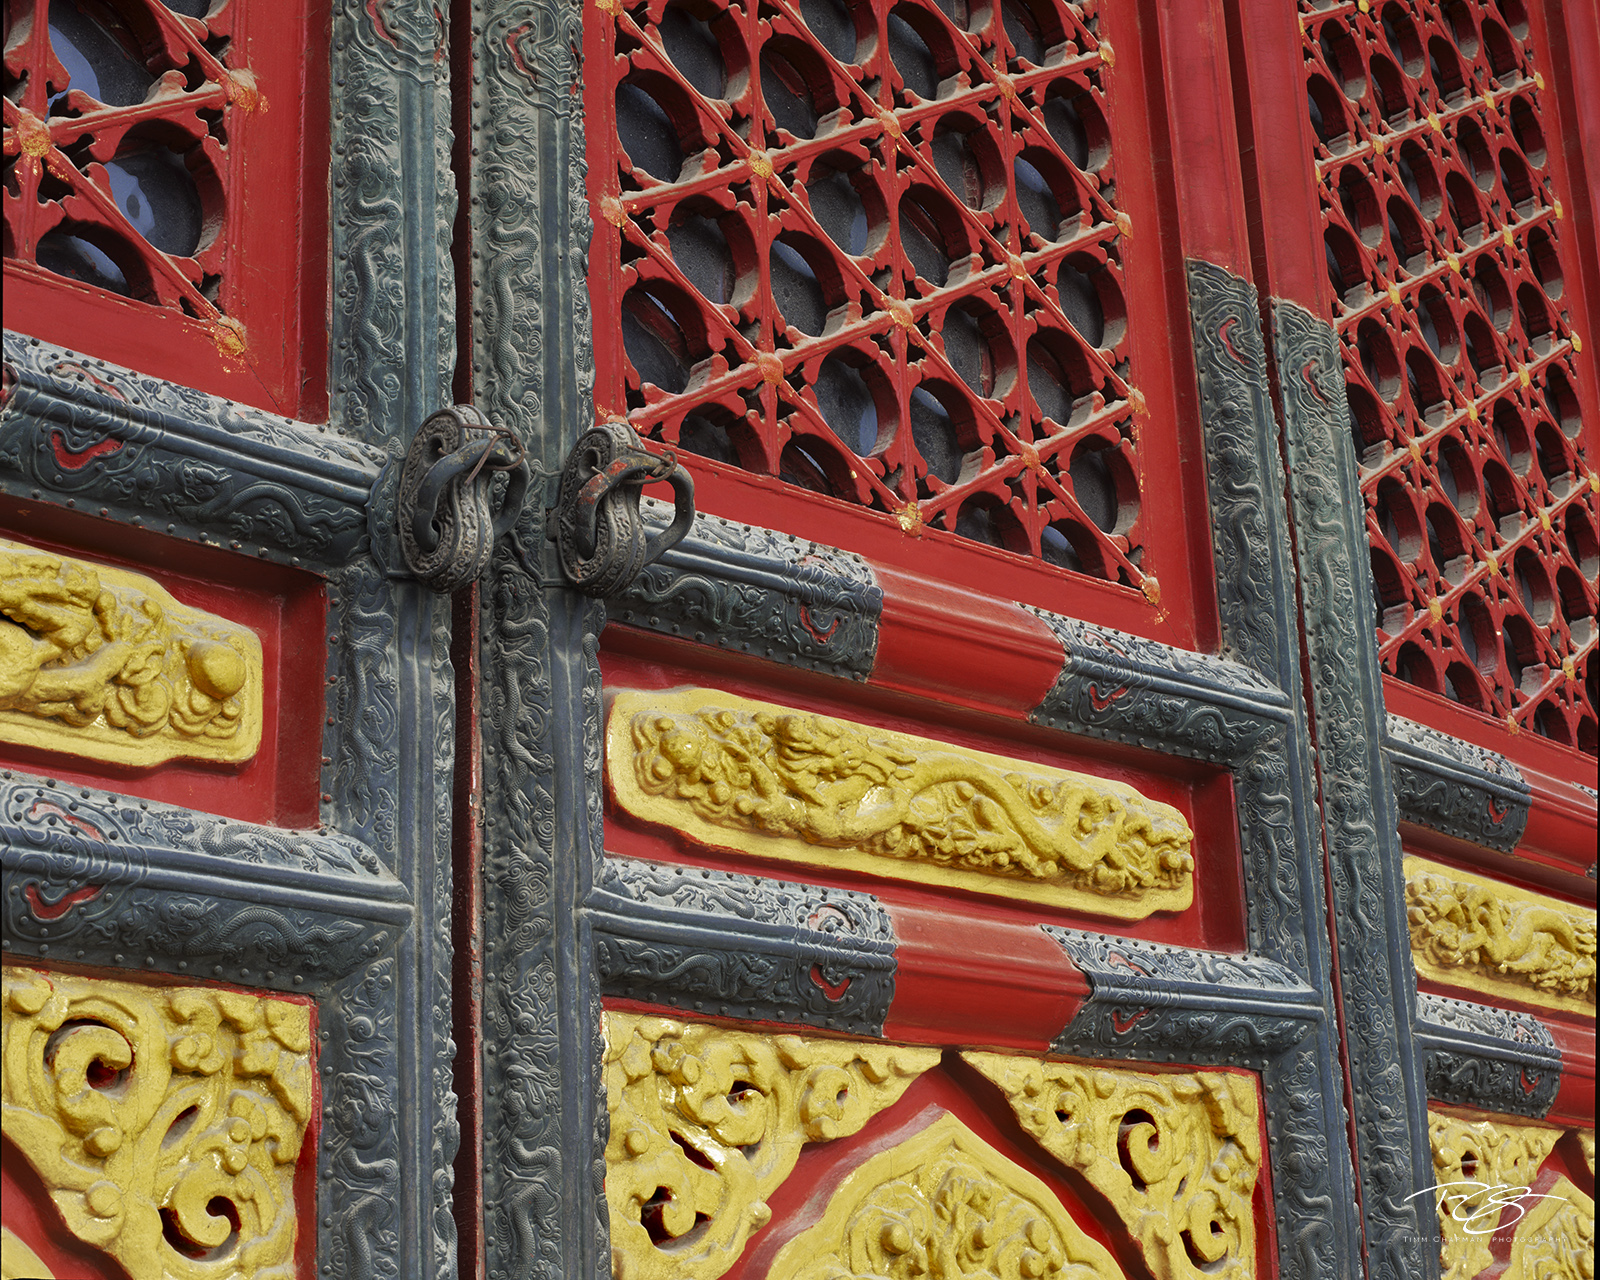 forbidden city, forbidden doors, ornate carving, ornate doors, ornate, door, doors, doorway, dragon engraving, asian architecture, red, gold, colourful, beijing, peking, ancient doors, photo